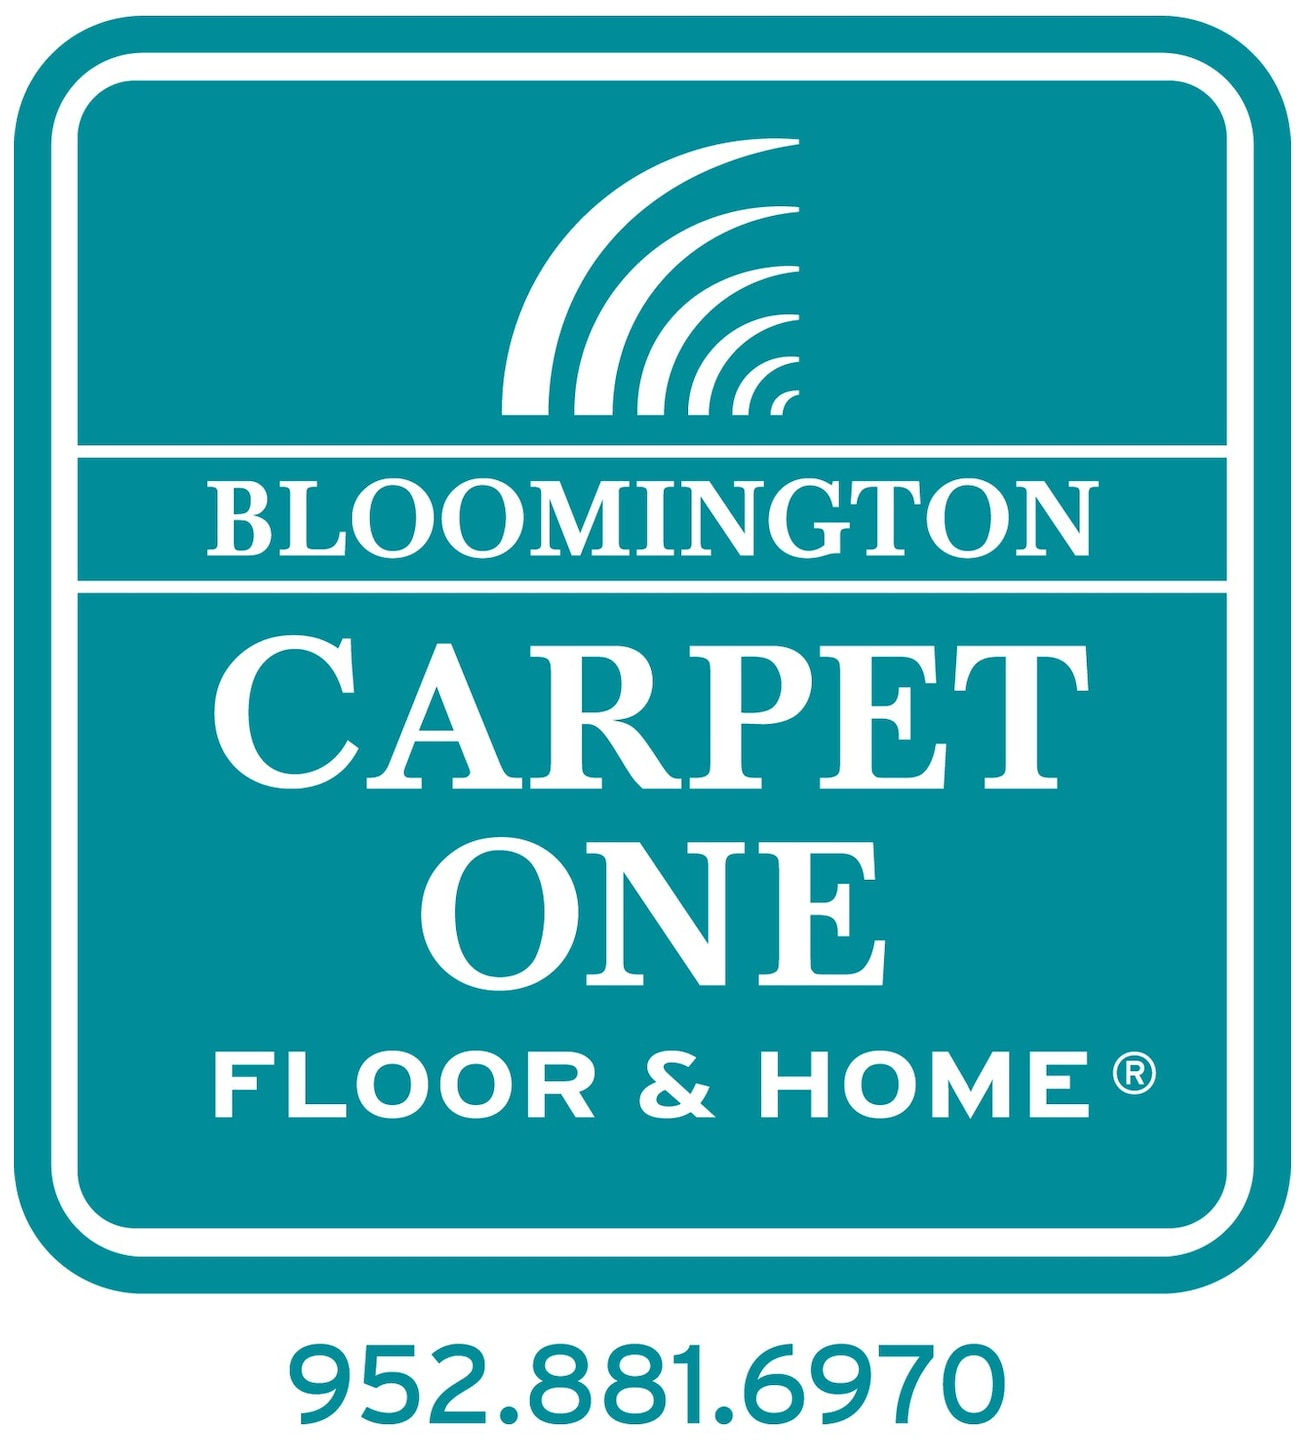 Bloomington Carpet One